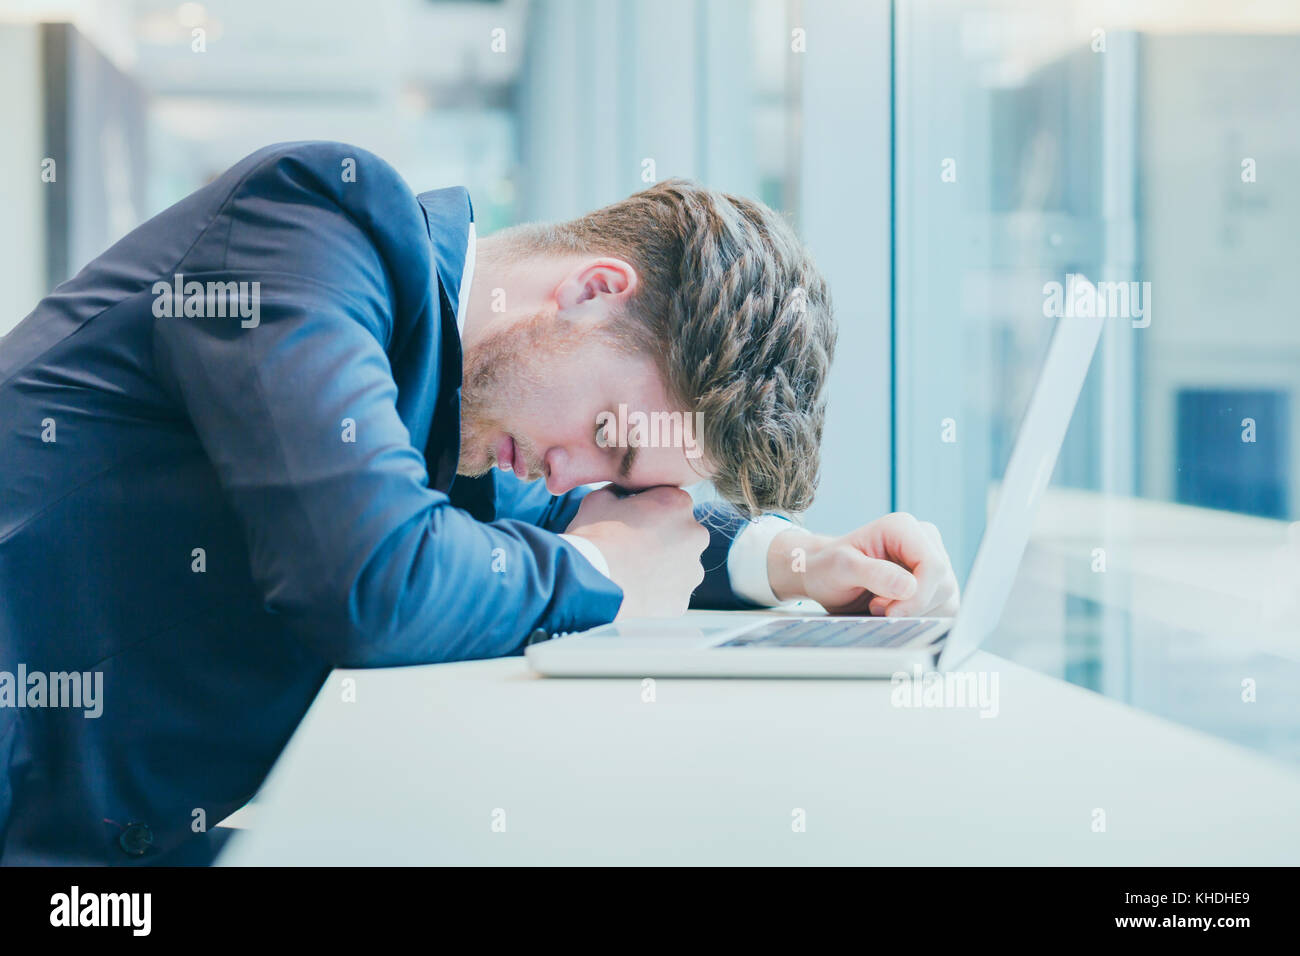 failure concept or bad news, desperate sad tired business man with many hopeless problems, stress at work - Stock Image